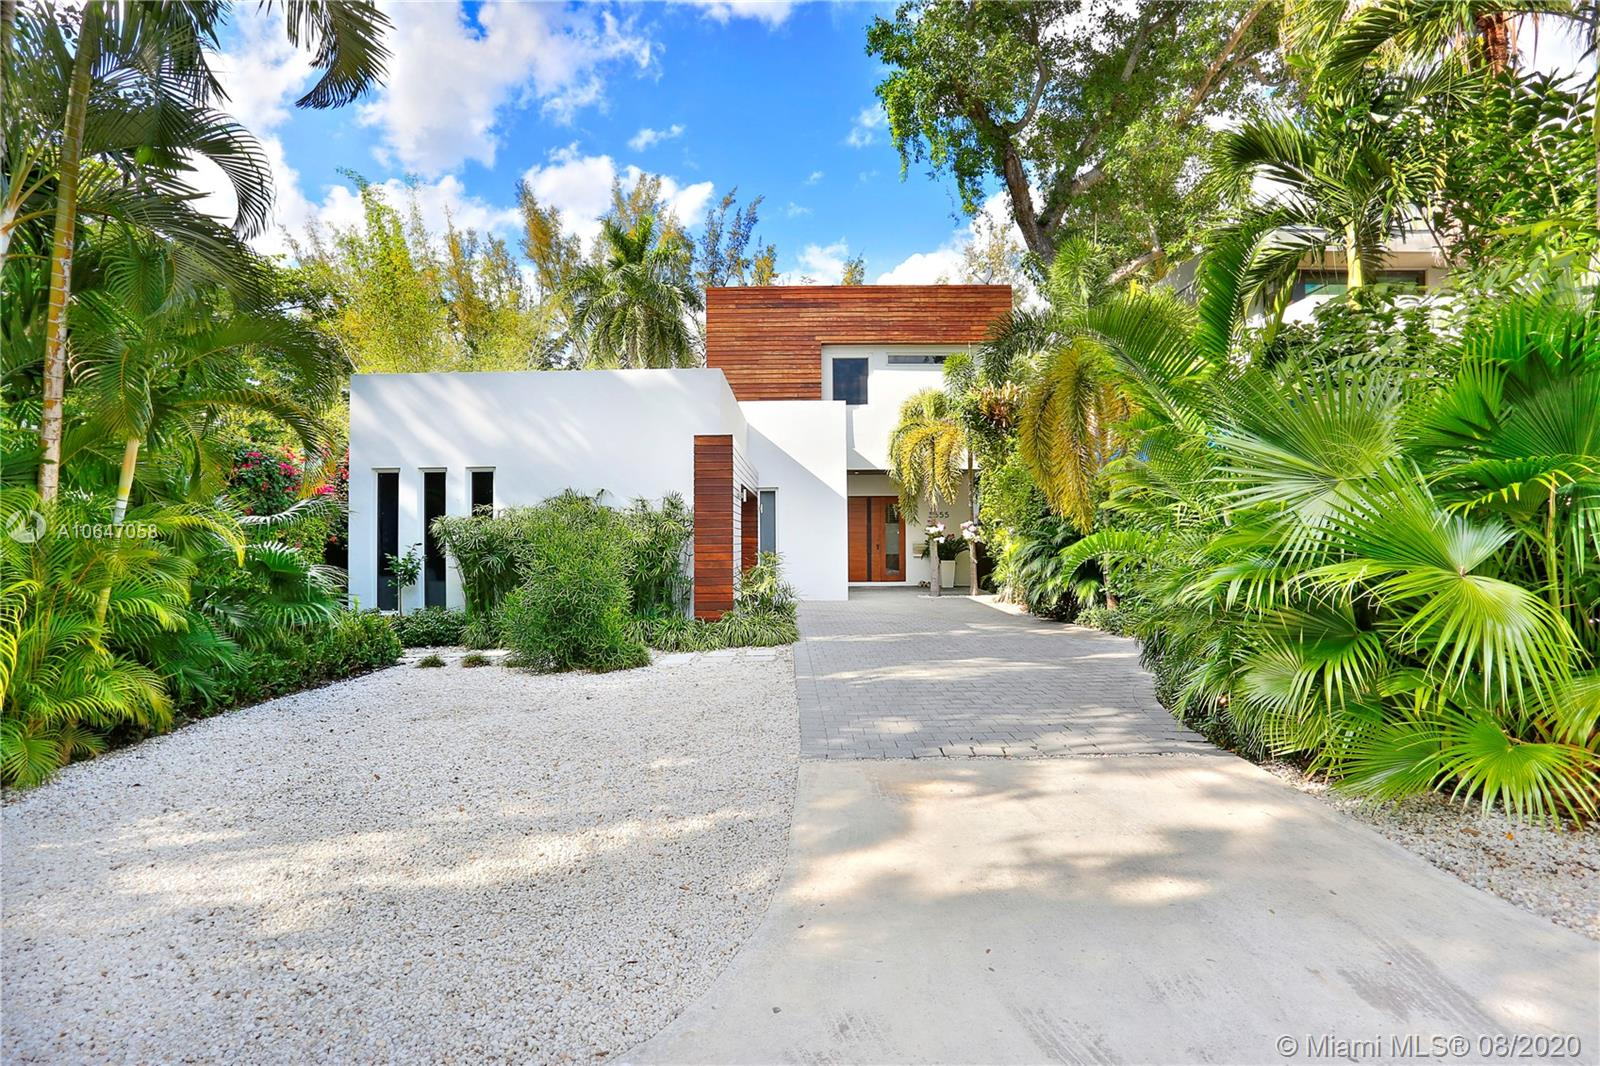 Spectacular Tropical Modern home on a quiet South Grove street. Walls of glass & soaring ceilings create light-filled open living spaces overlooking serene pool & terrace. Formal living & dining spaces & European style kitchen that features quartz countertops, high-end appliances & island. 4 BR's with en-suite baths plus upstairs den, easily converted to a 5th BR. Large master suite includes spa-like bath & private balcony w/ tree-top views. Deep lot runs street-to-street, creating an ultra-private back garden w/ lush landscaping surrounding the outdoor living/play area. Walk to some of South Florida's best schools: Ransom Everglades, Carrollton, St. Stephen's & more. Close to the Grove village centers boutiques, cafes and bay front parks & marinas. Minutes to downtown, MIA & the Beaches.